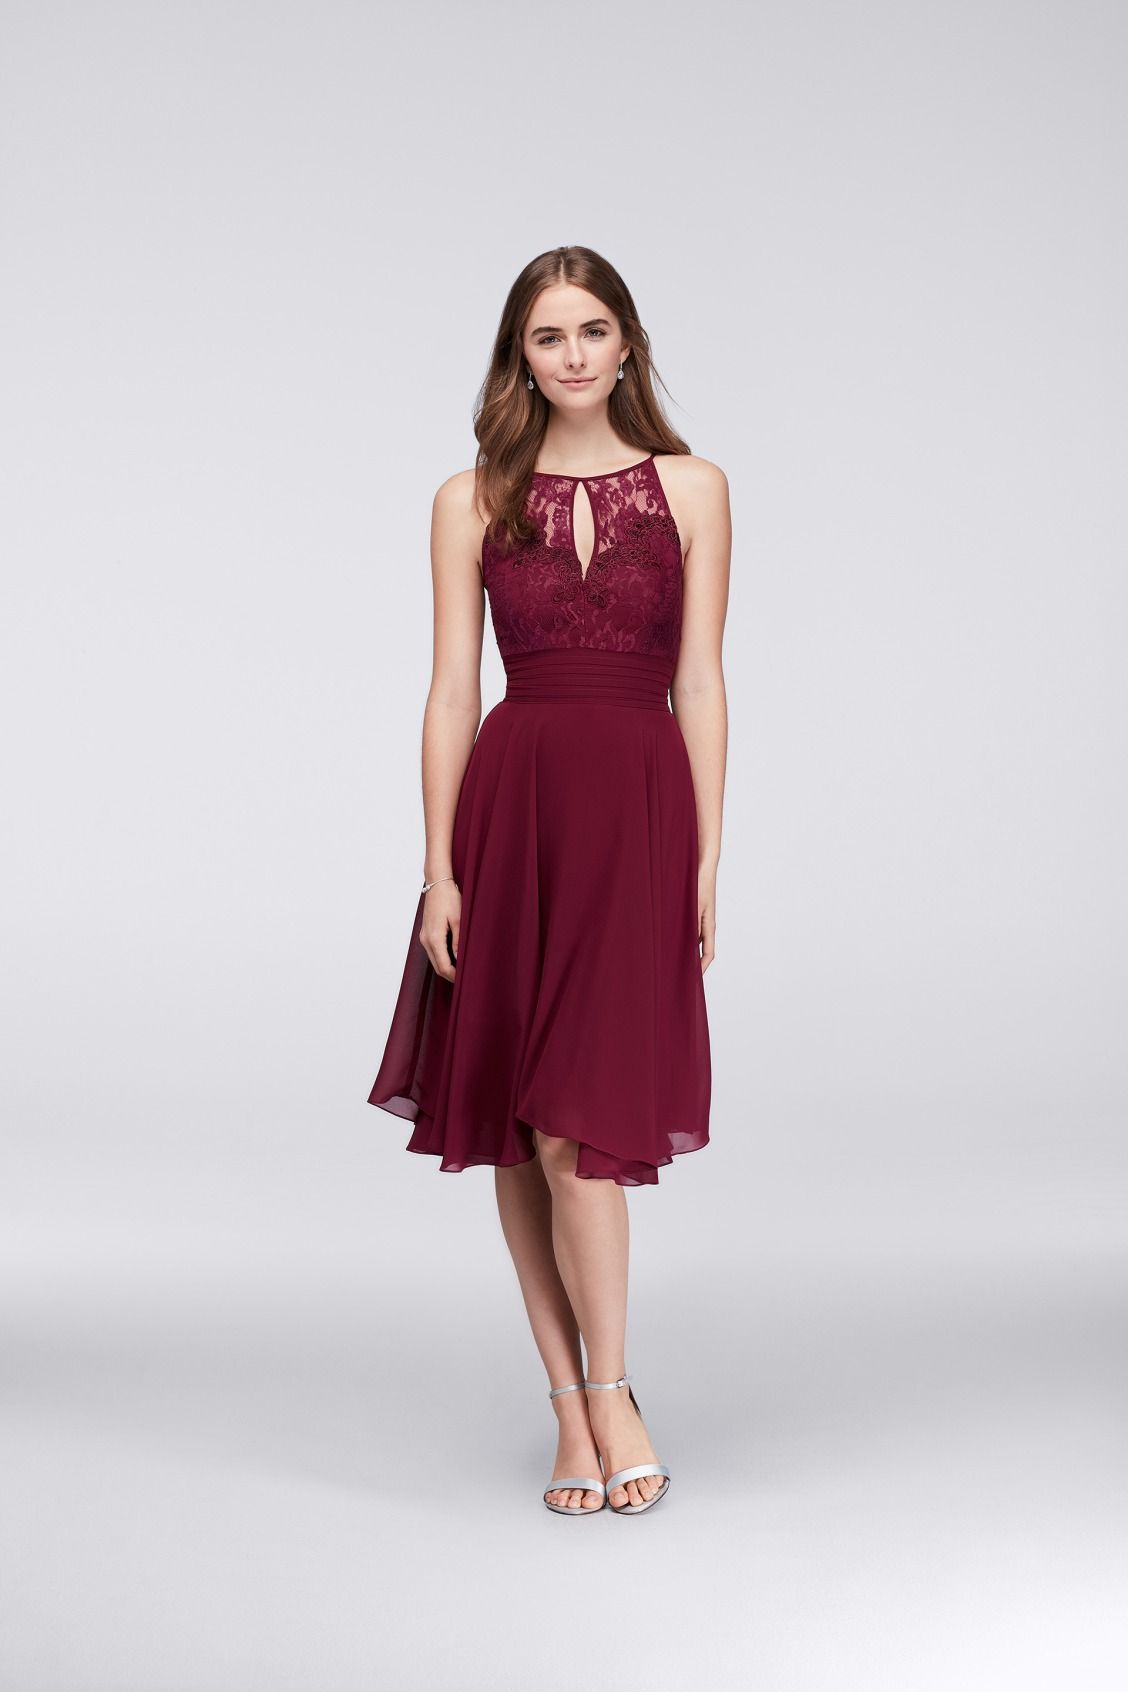 b9d2fbbdc38 For your burgundy bridesmaids